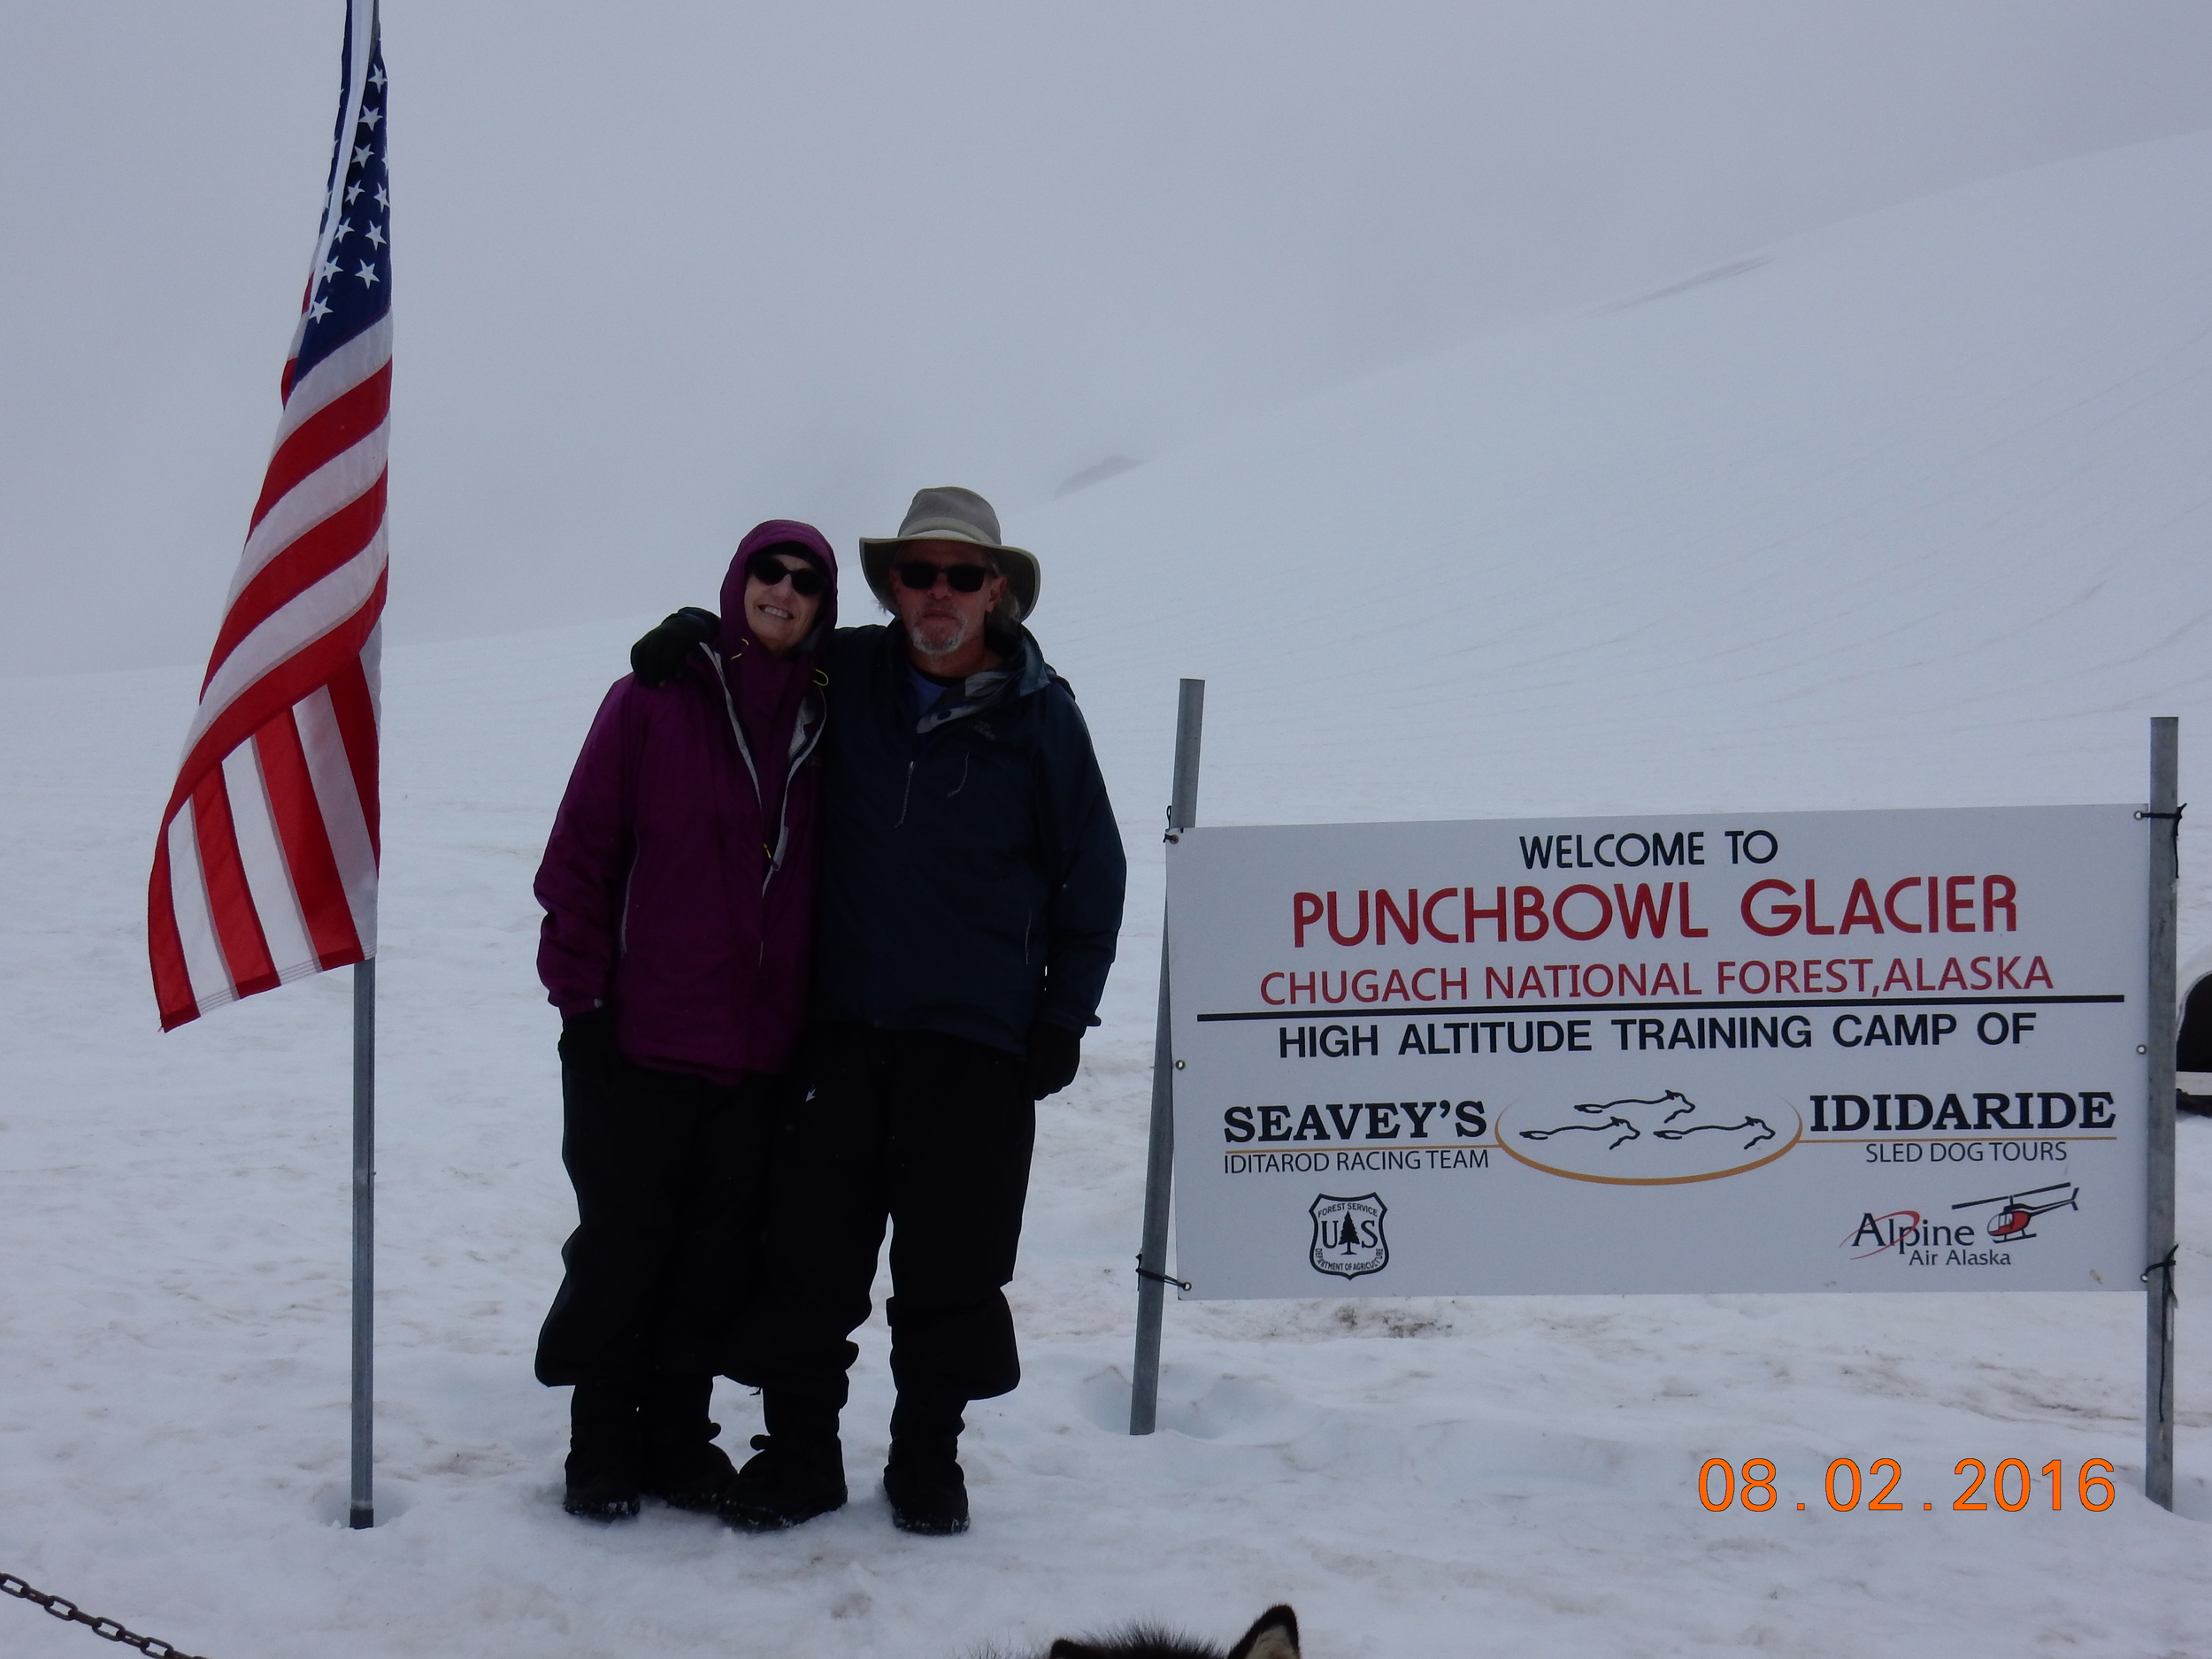 Photo op. Yes, we were really on this glacier learning about dog sledding. I did not make this up.